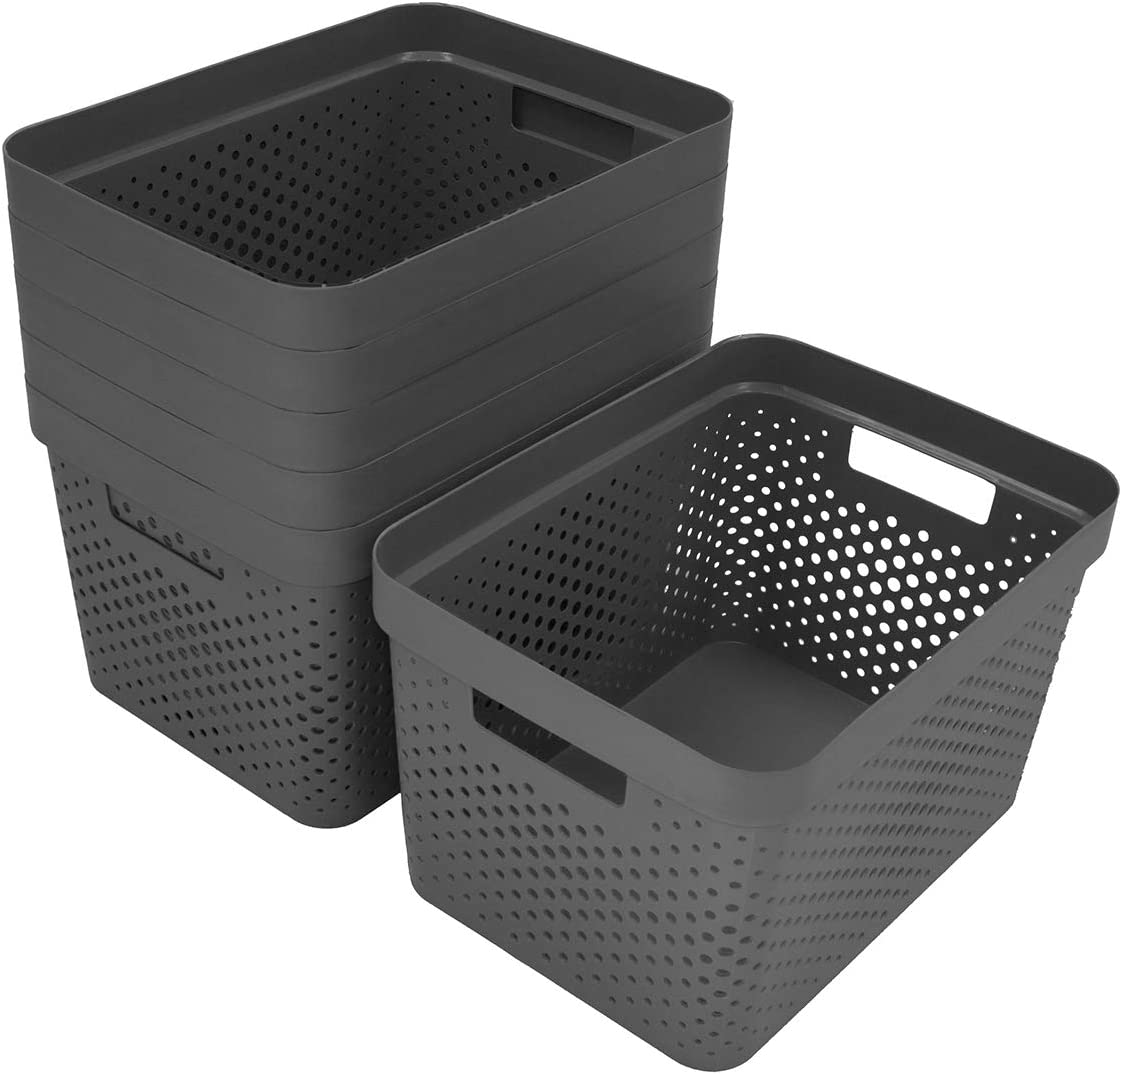 Glad Plastic Storage Basket Set, Bulk Pack of 6 | Kitchen, Pantry, Closet, Bathroom Bins | Home Organization Containers for Shelves | Room Essentials, 4 Gallon, Gray